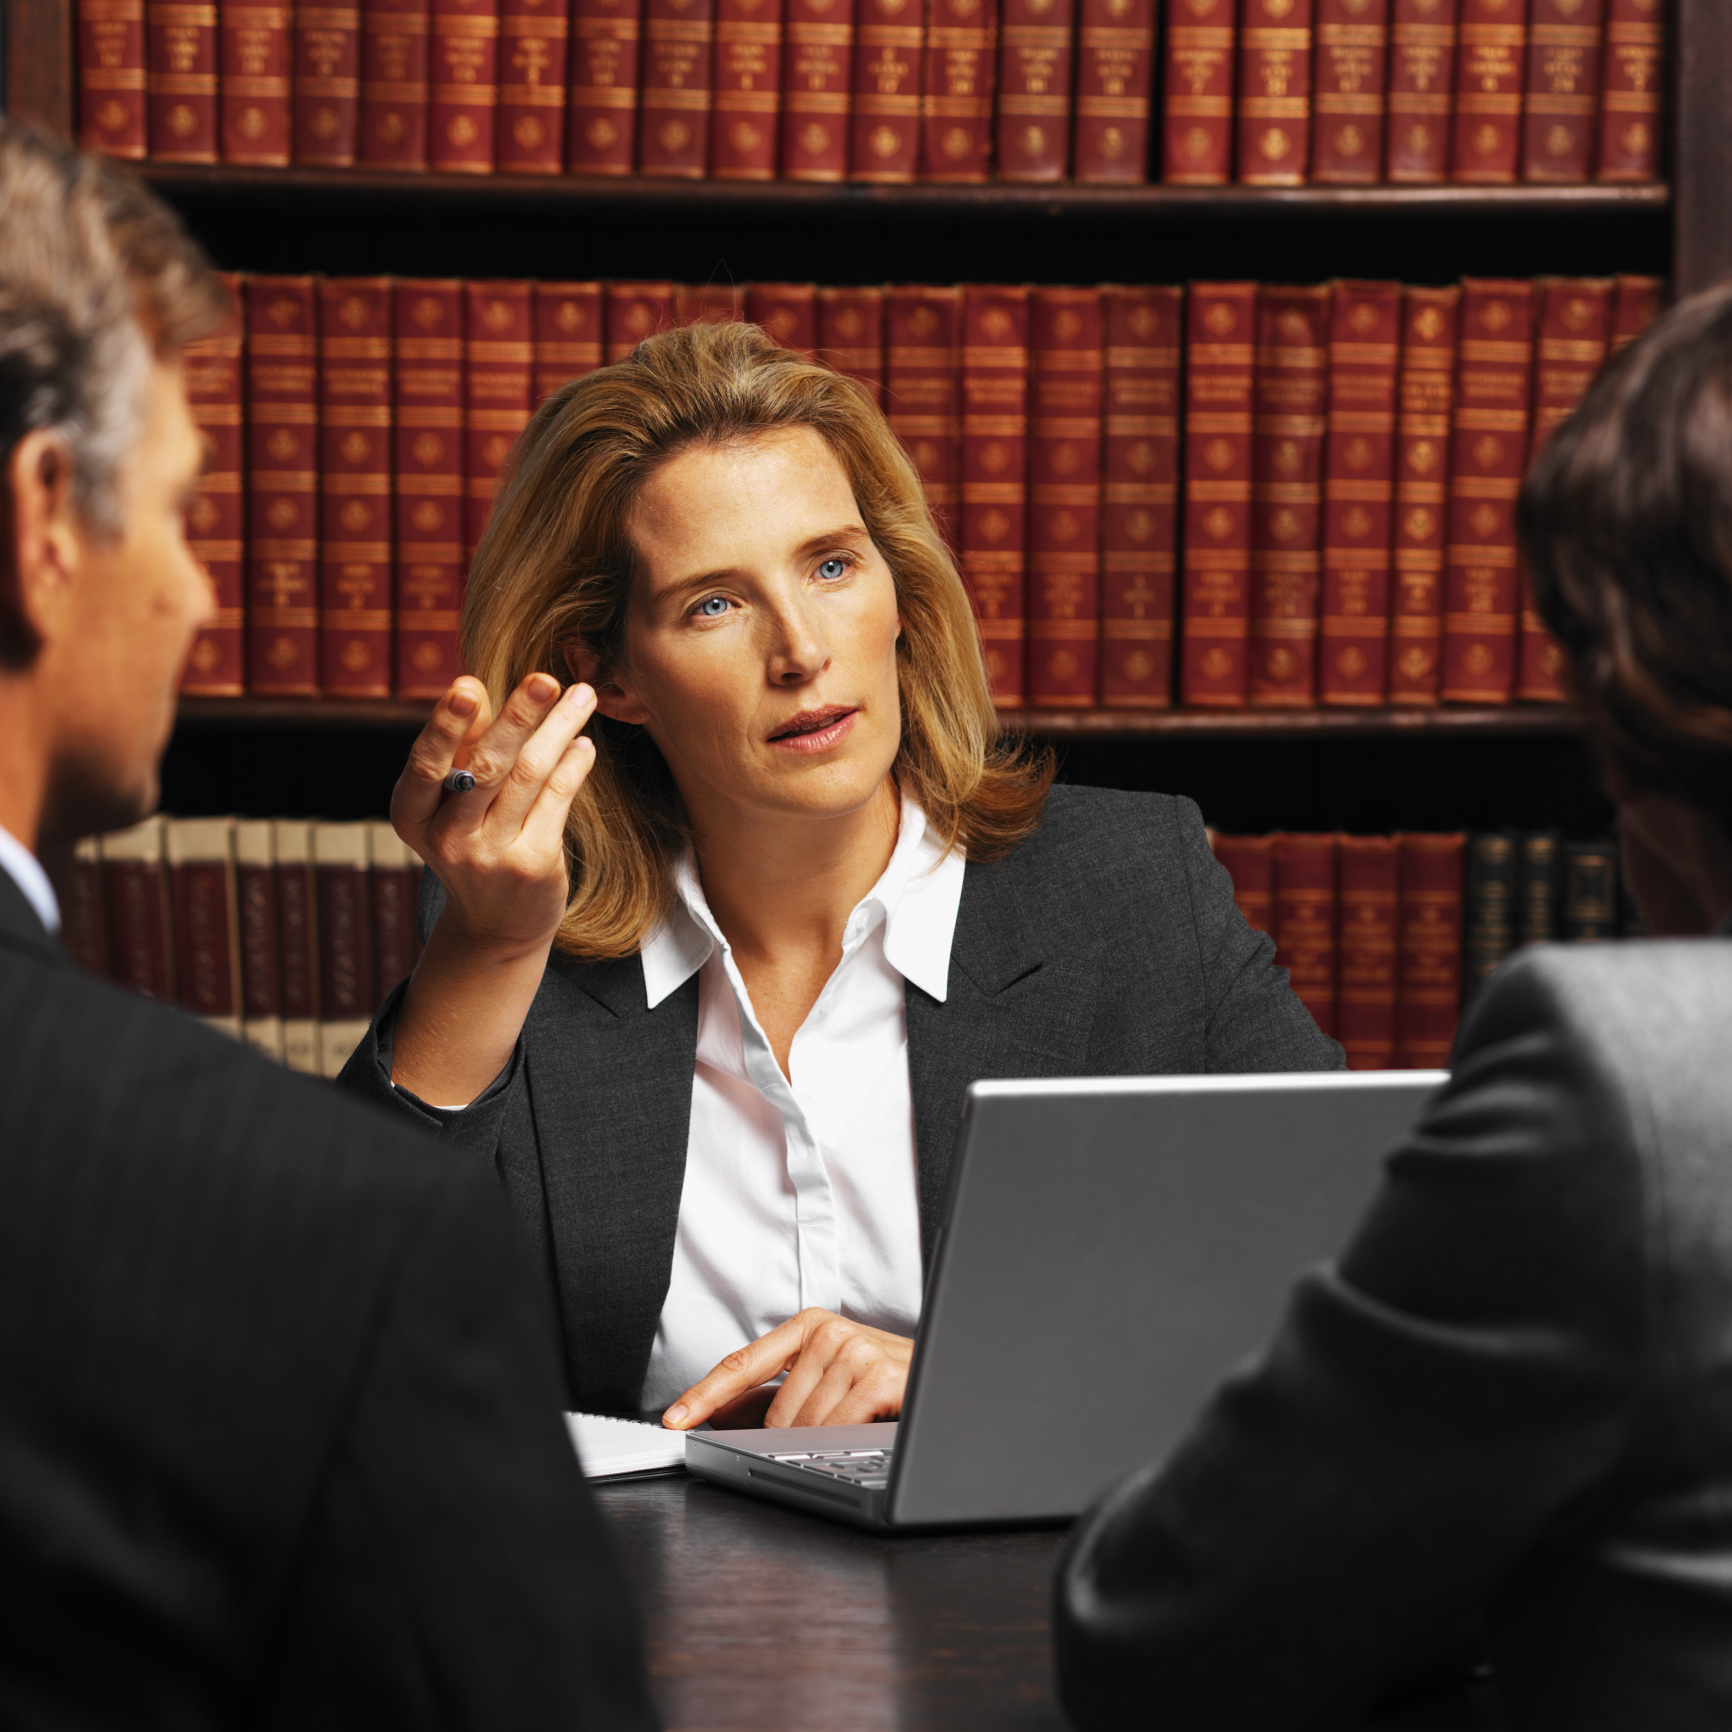 Career Description Of An Immigration Lawyer